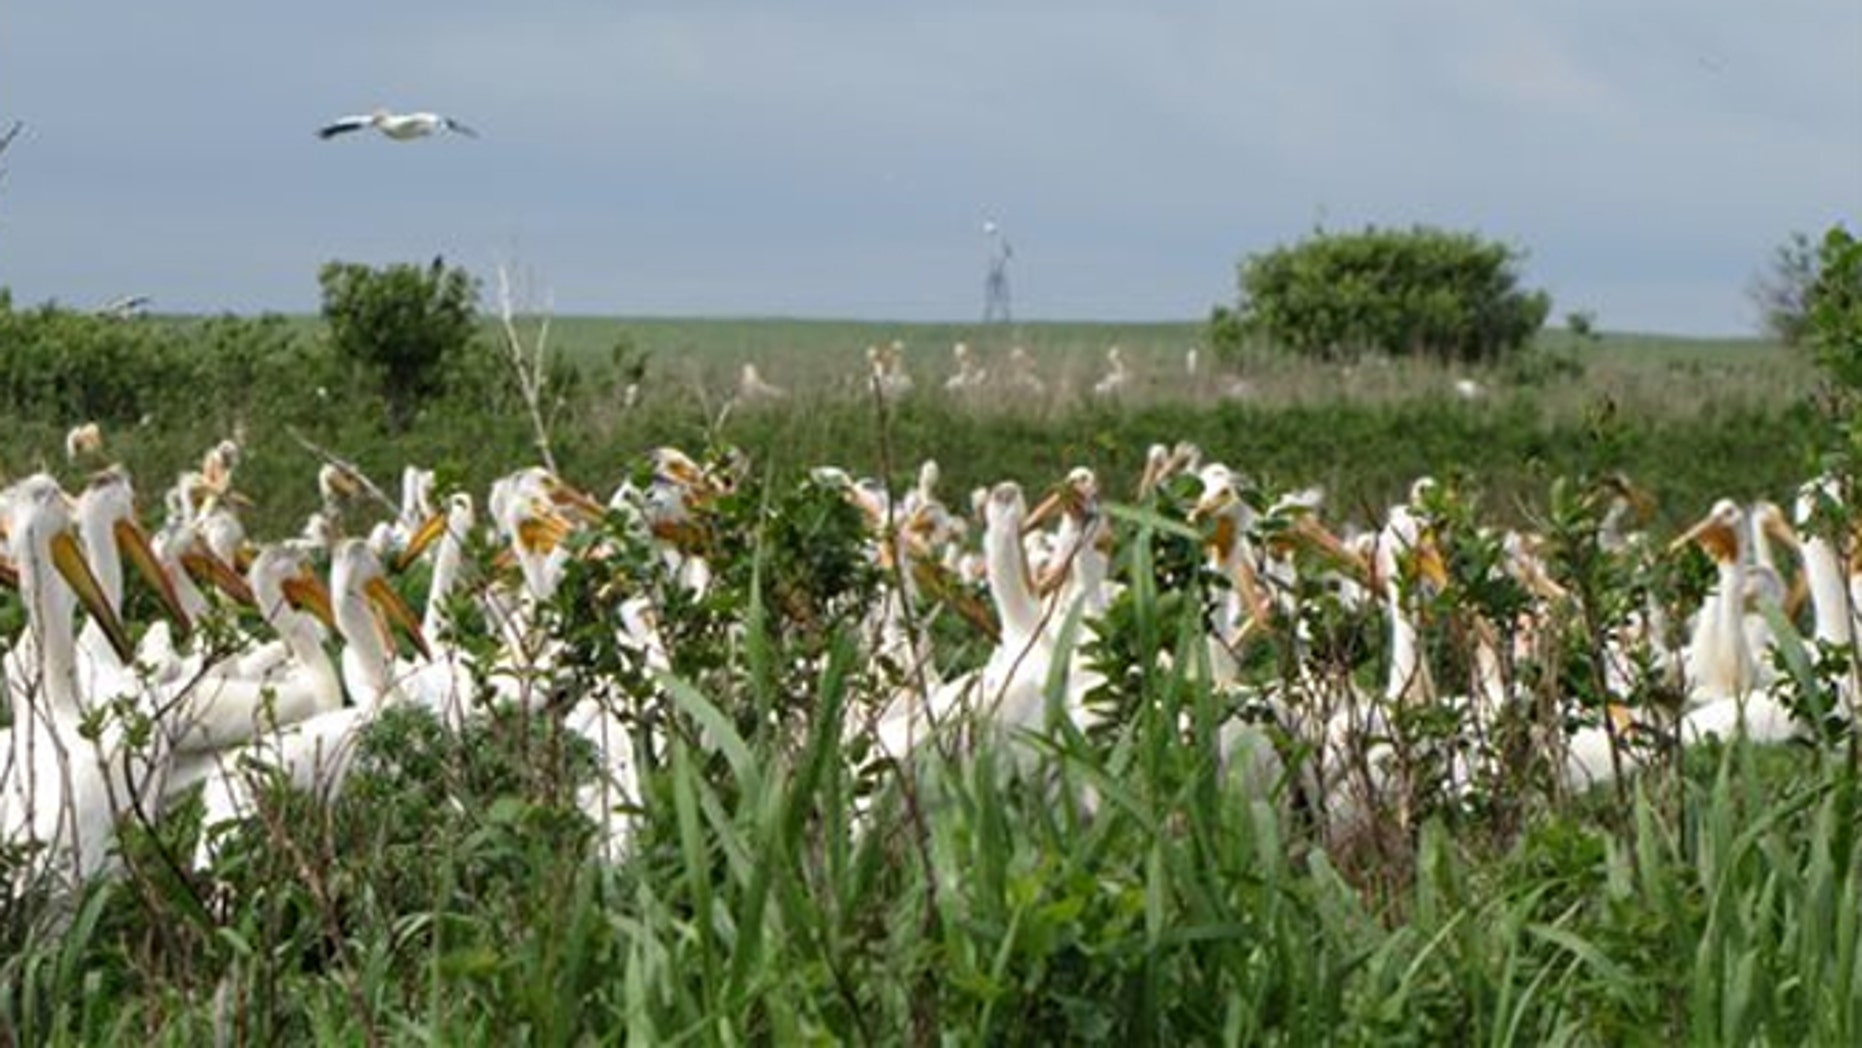 June 9, 2011: The U.S. Fish and Wildlife Service shows American white pelicans nesting at the Chase Lake National Wildlife Refuge near Medina, N.D.